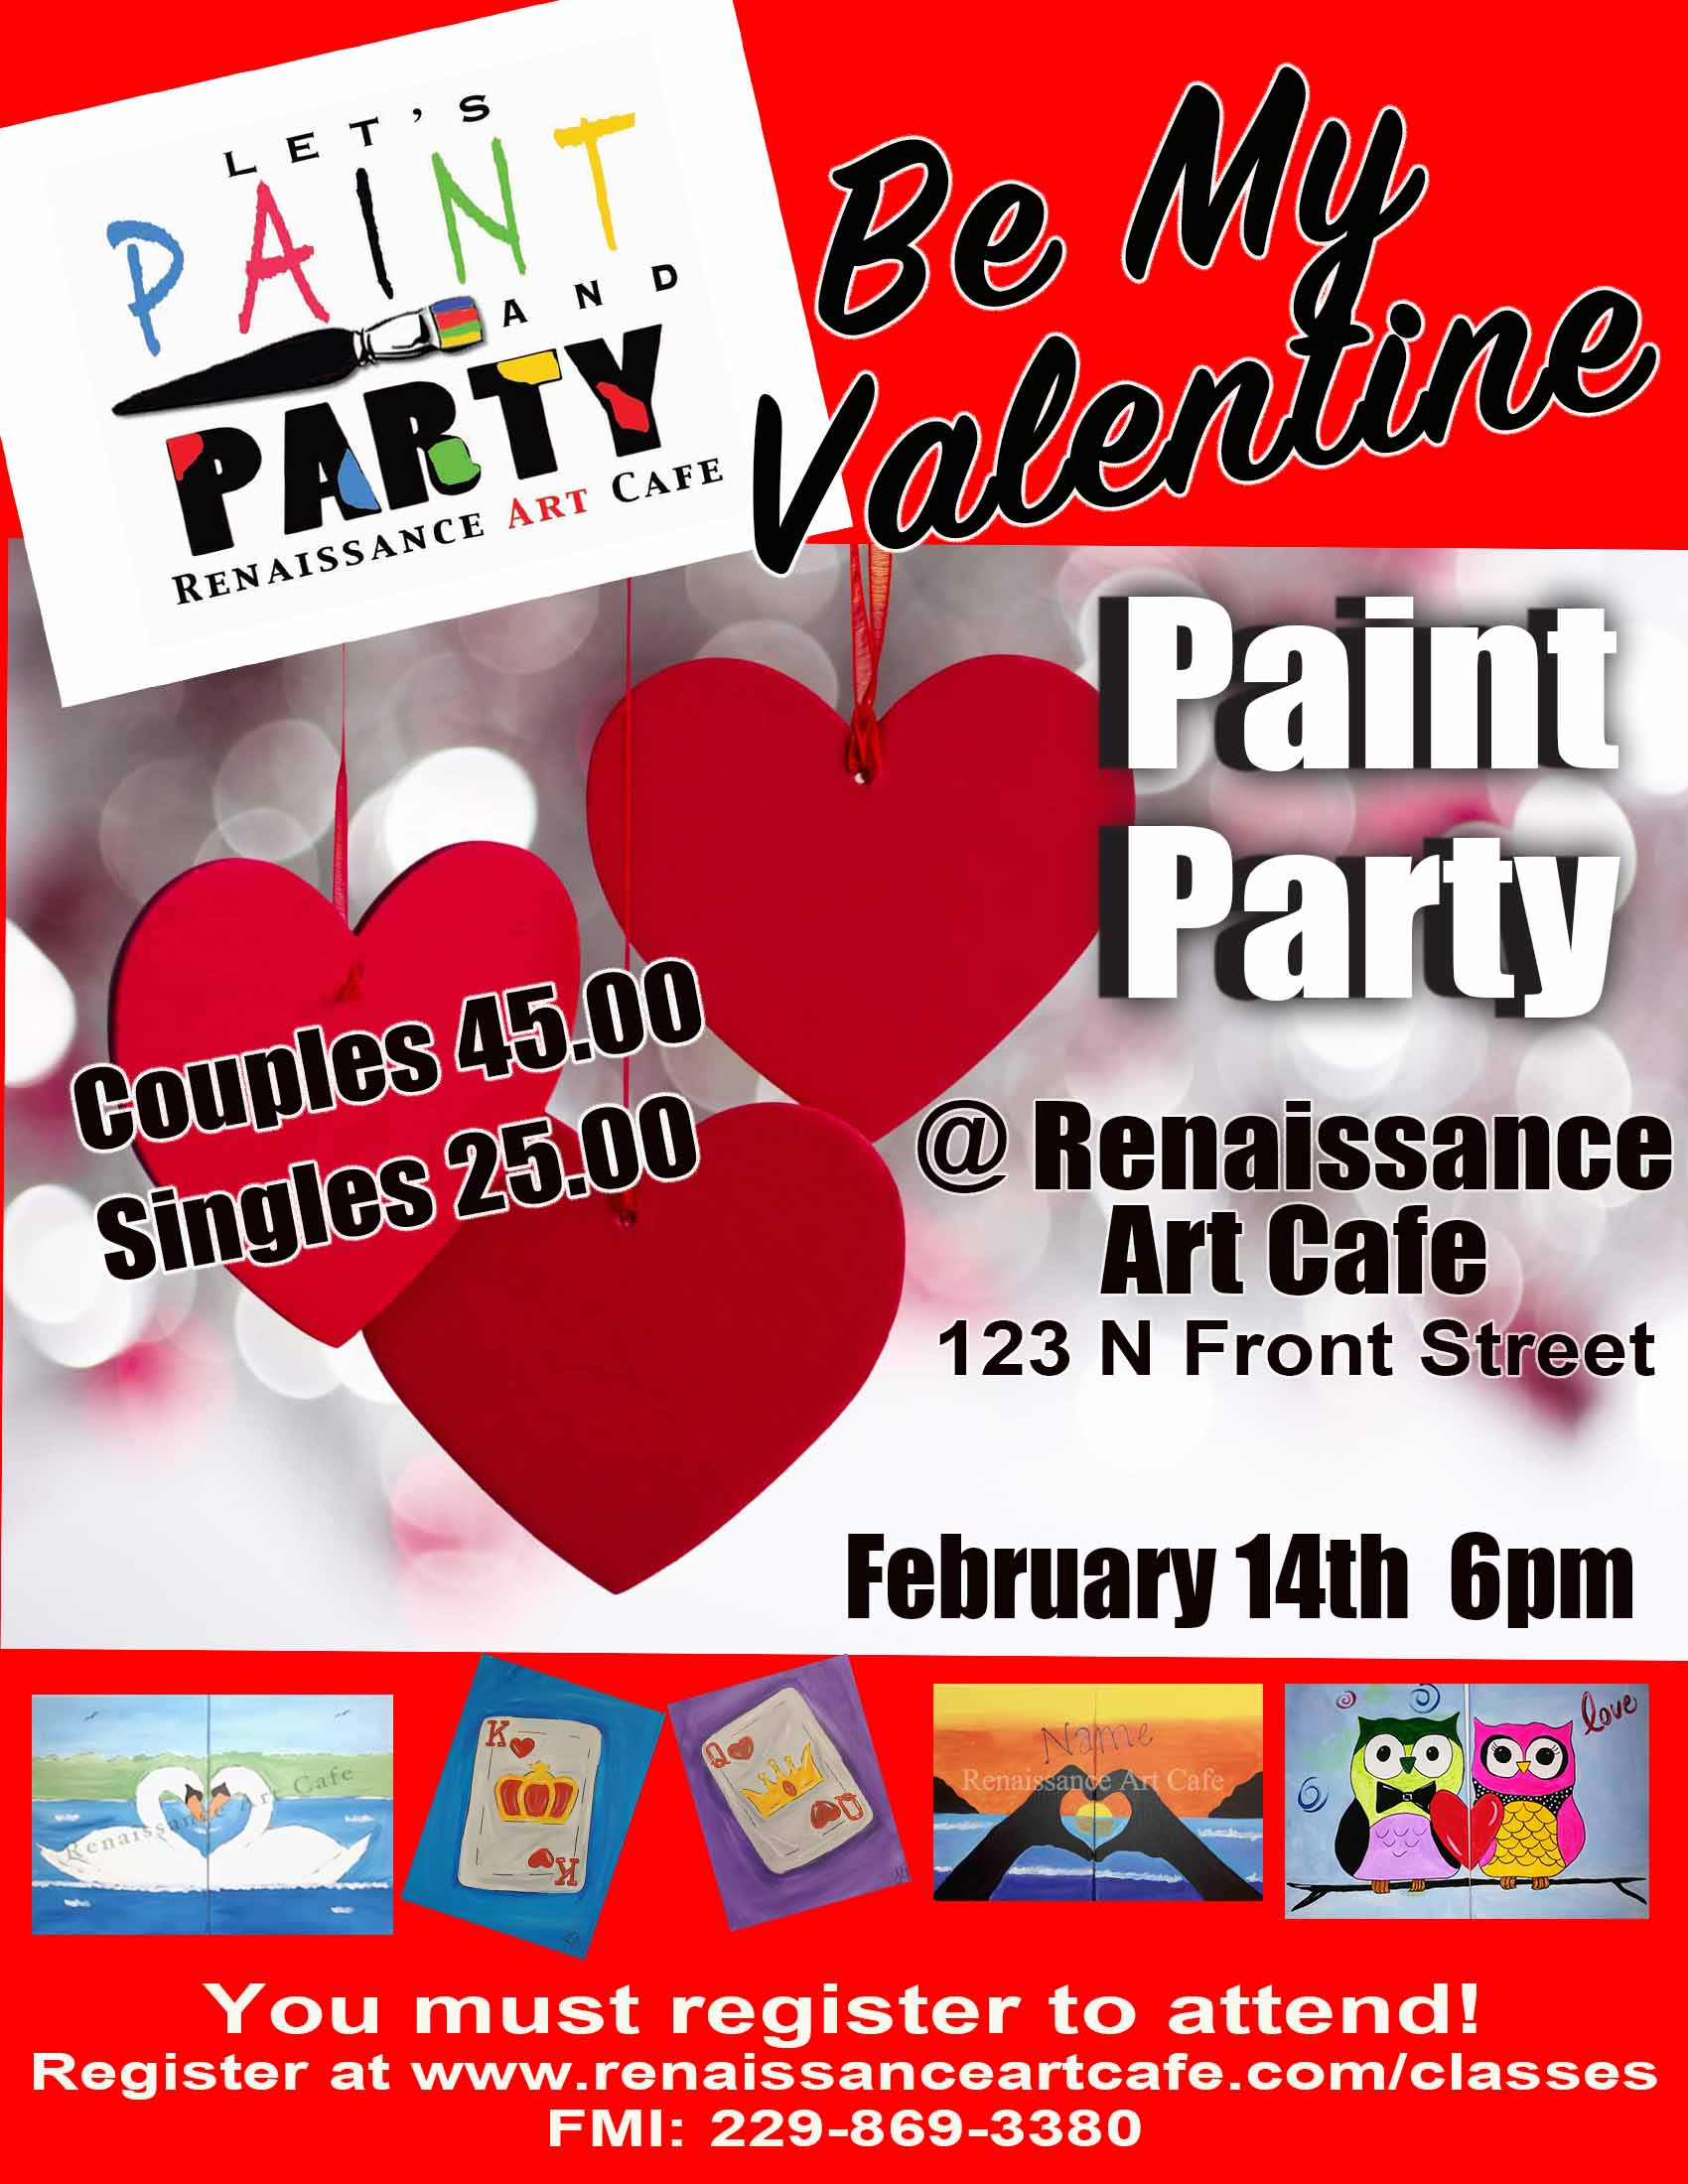 Be My Valentine Paint Party